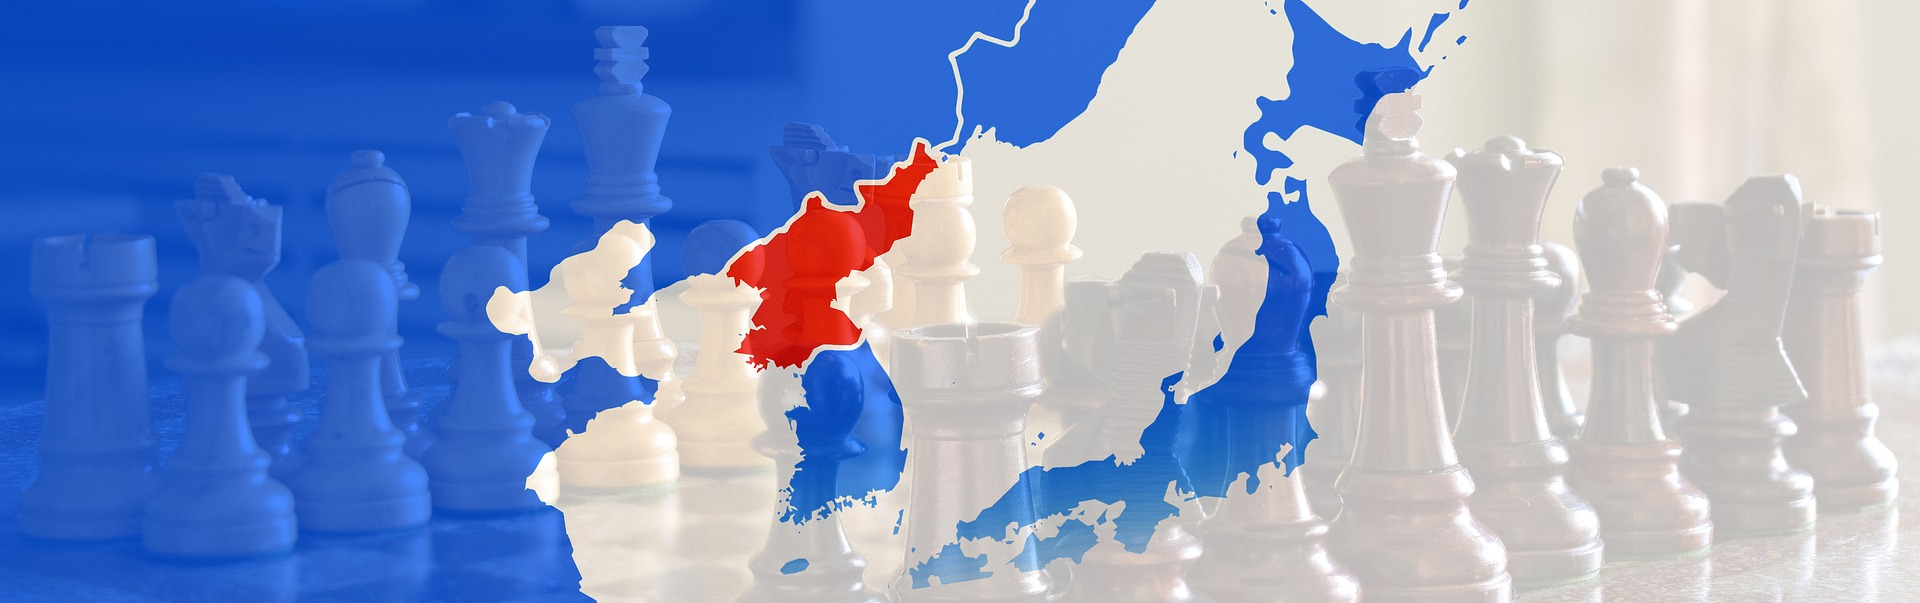 Club Press Conference: North and South: Where Next For Korea?